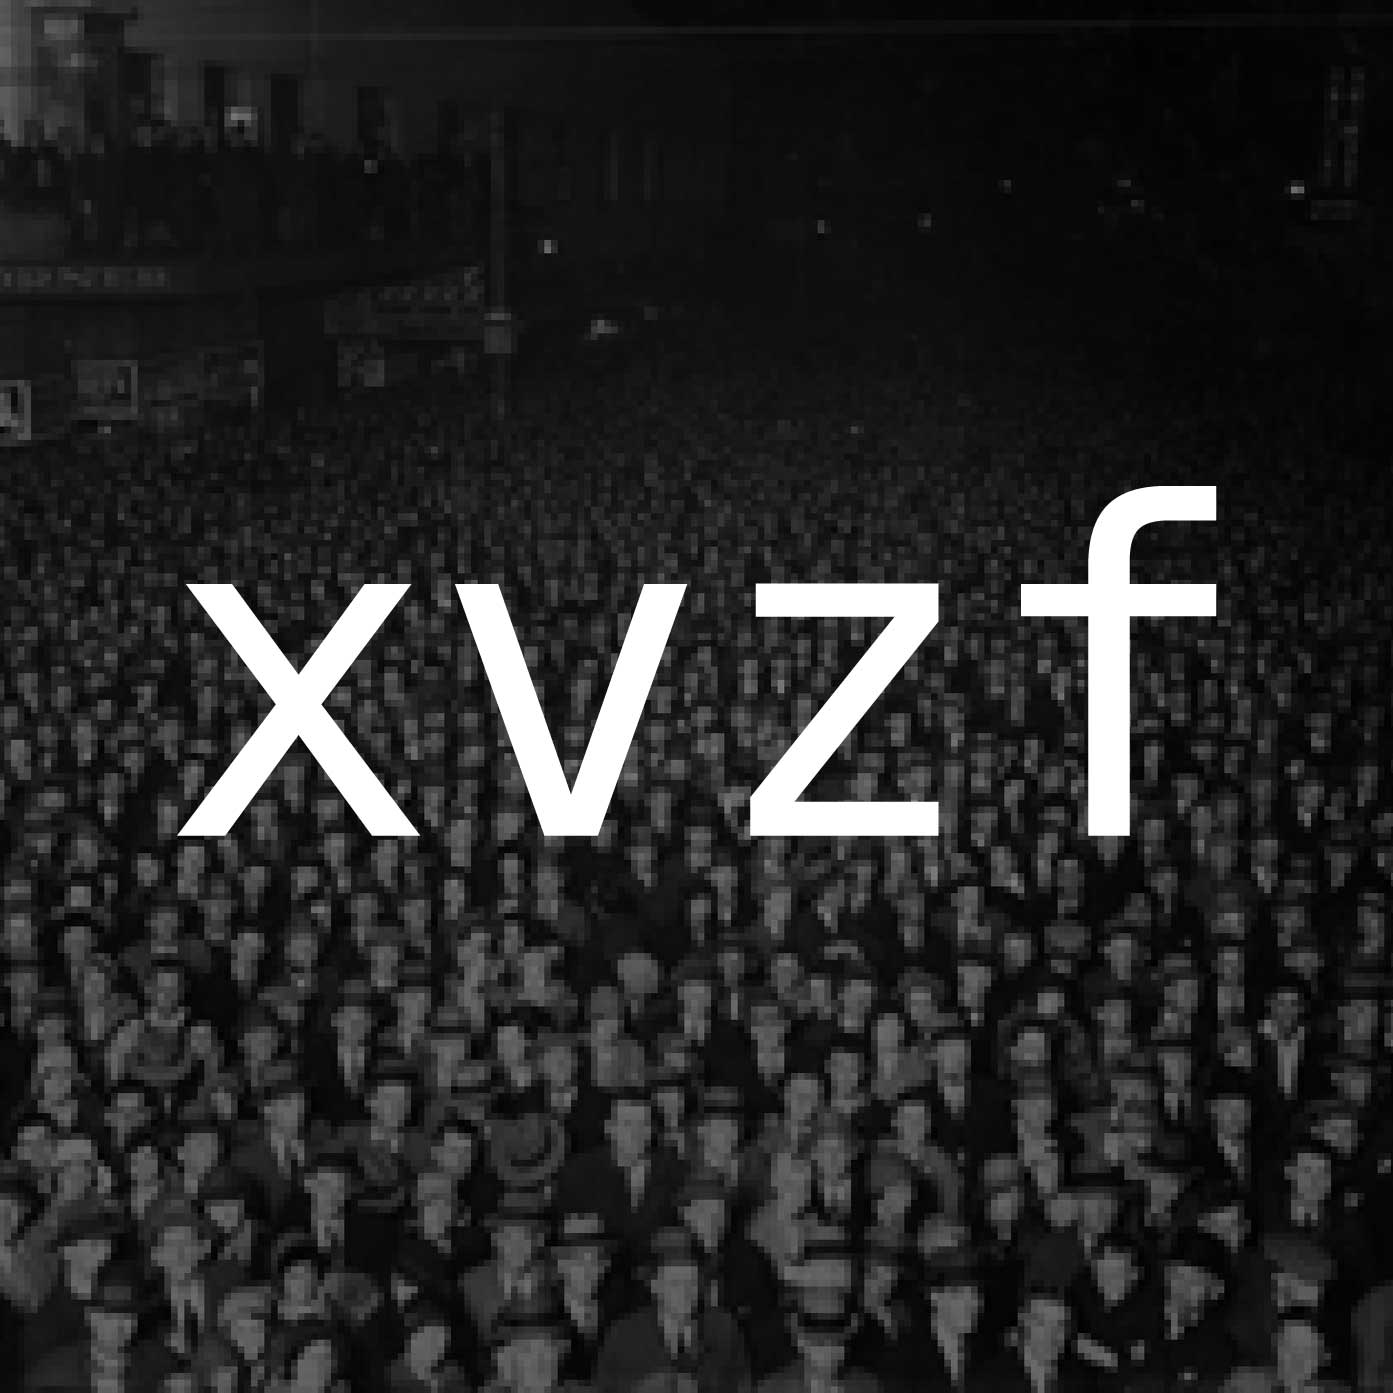 xvzf: true stories from toronto tech workers